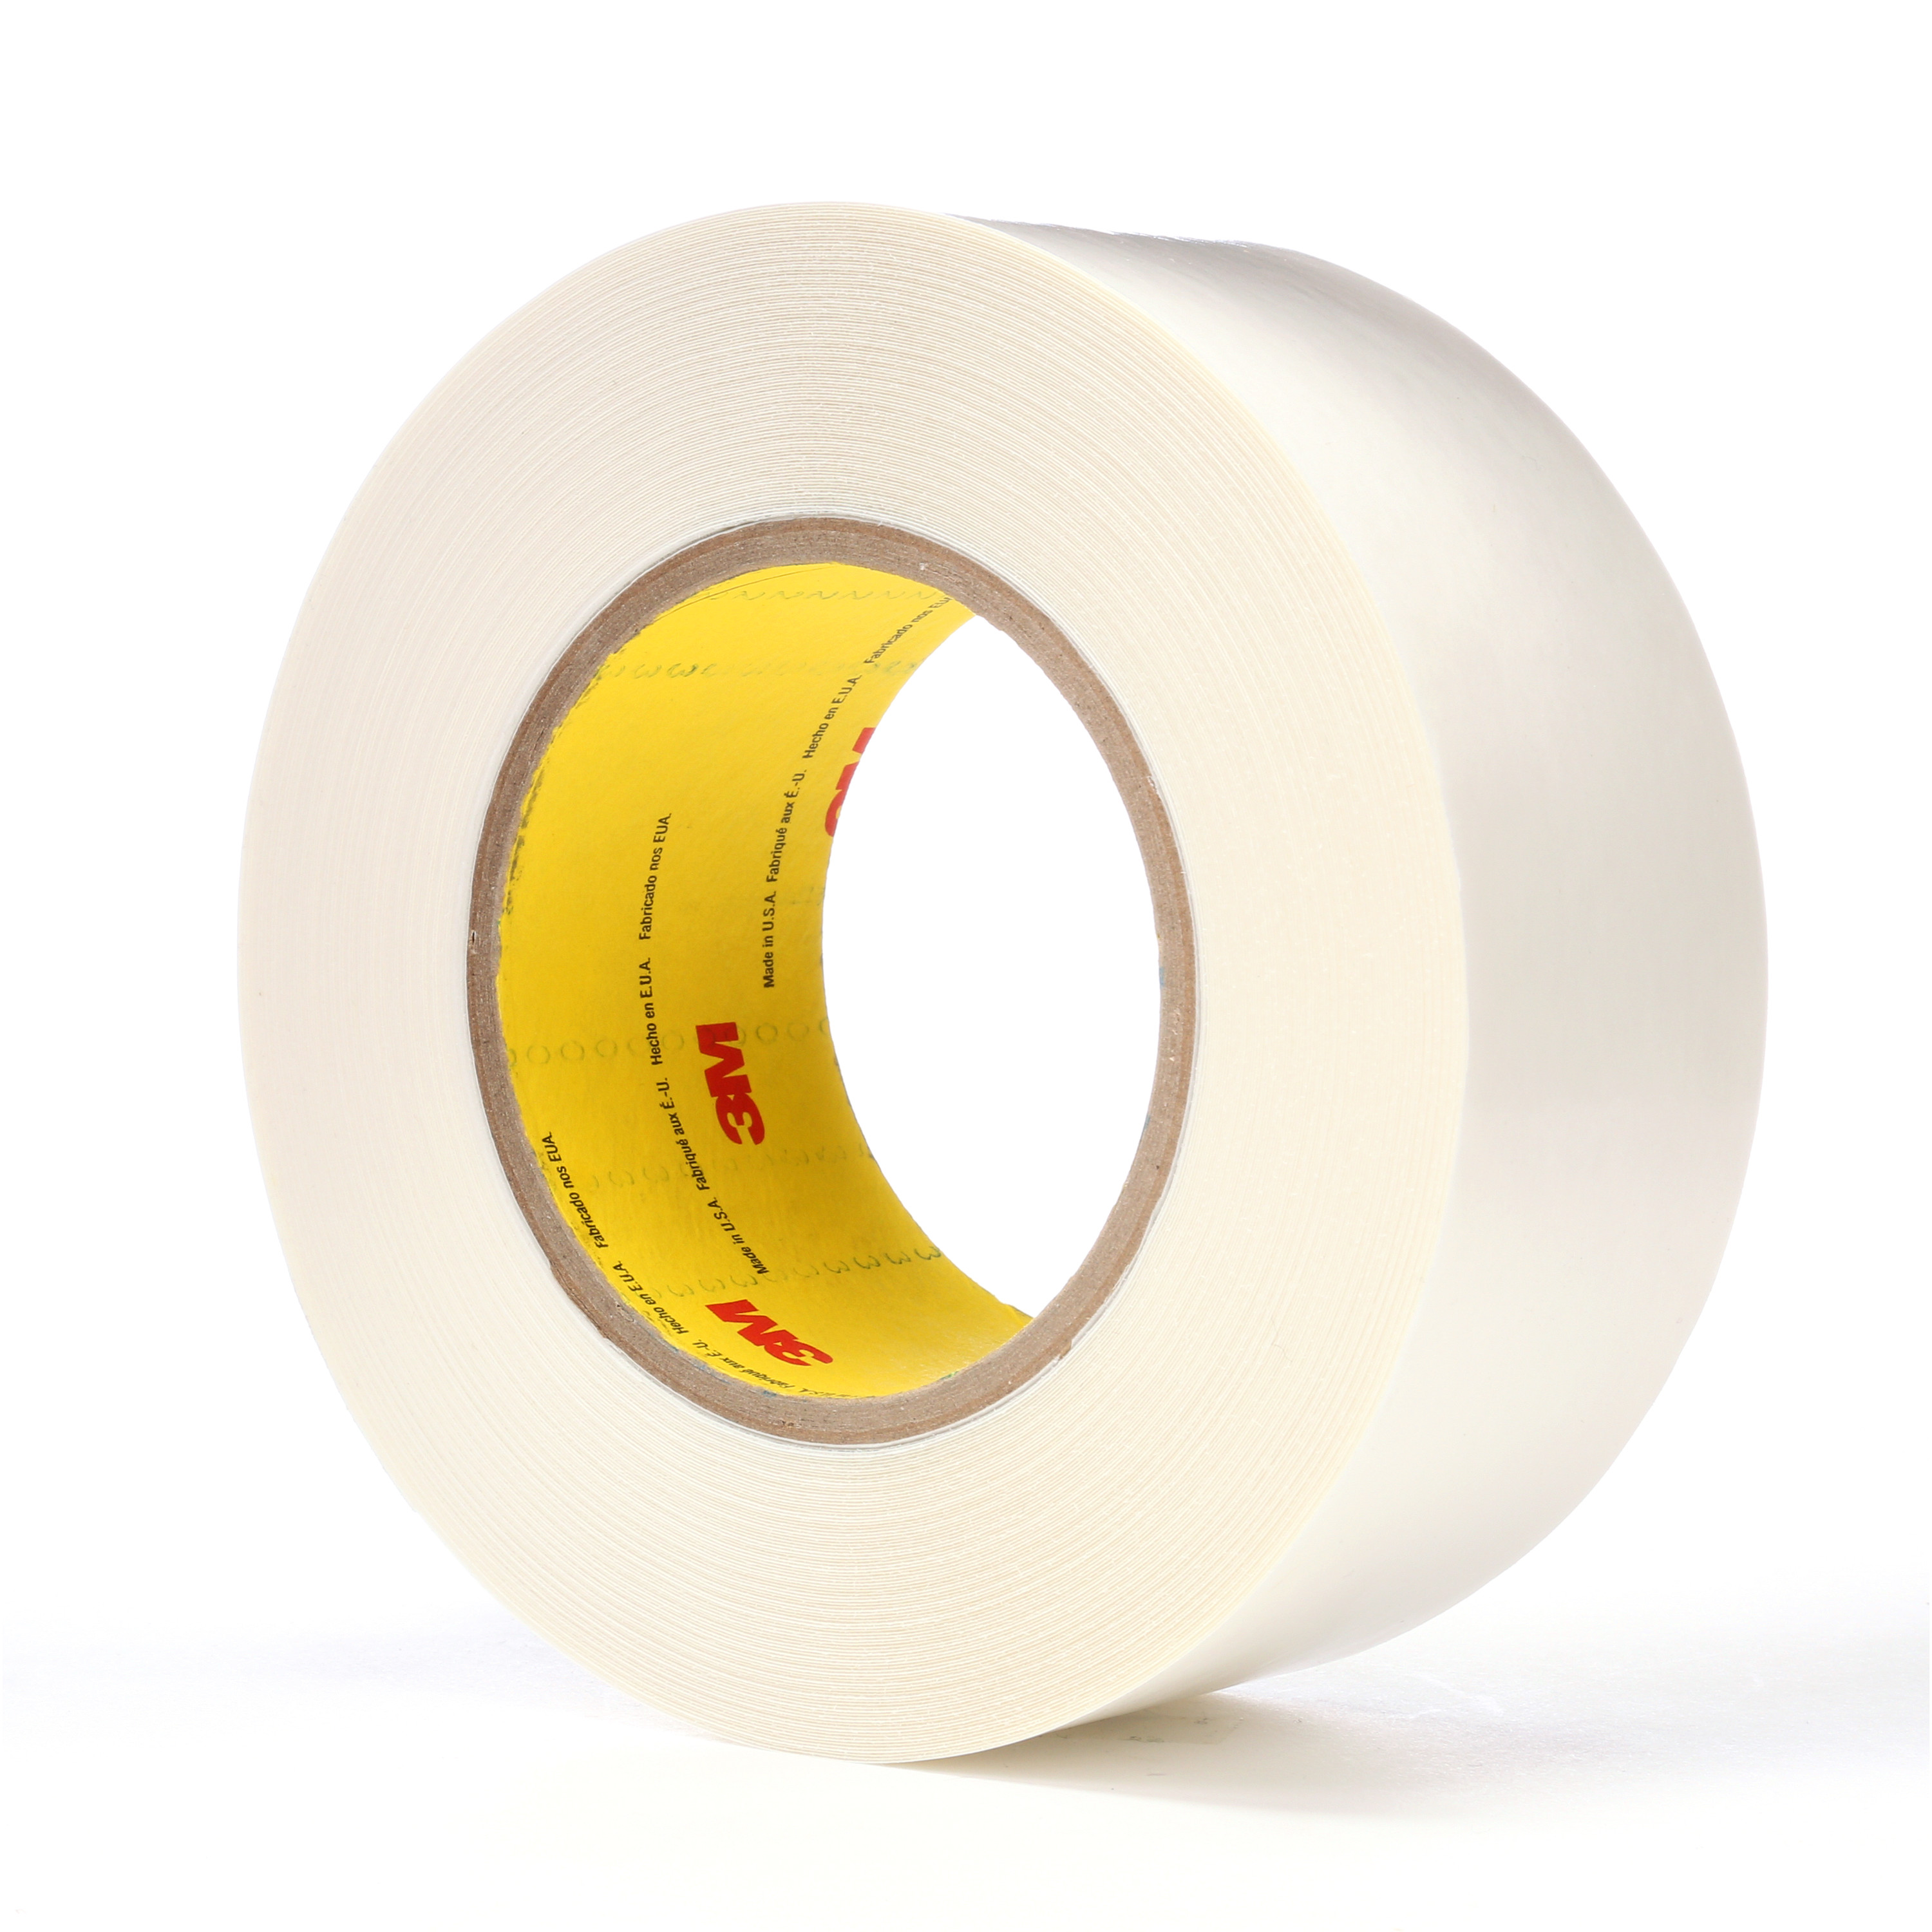 3M™ Double Coated Tape 9579, White, 2 in x 36 yd, 9 mil, 24 rolls per case